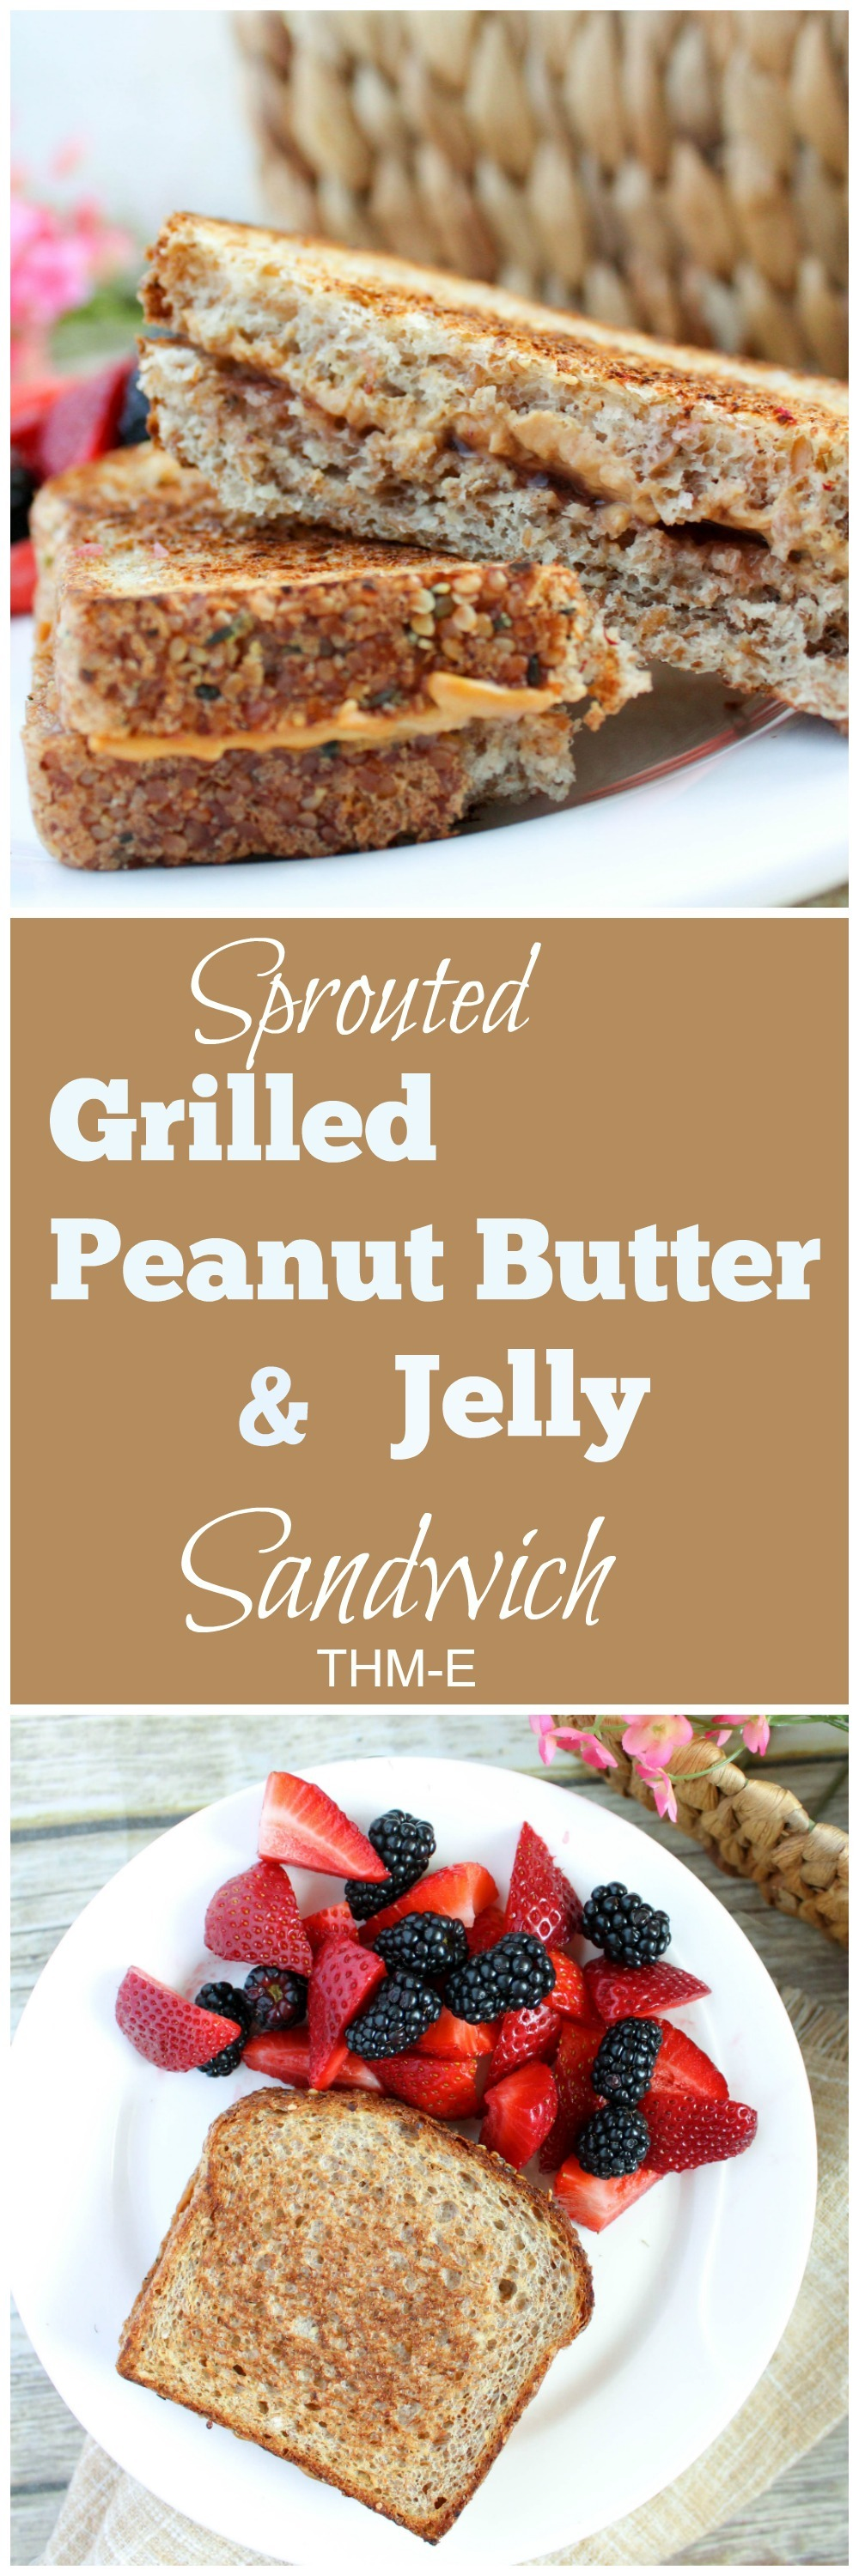 Sprouted Grilled Peanut Butter and Jelly Sandwich (THM-E, Low Fat)